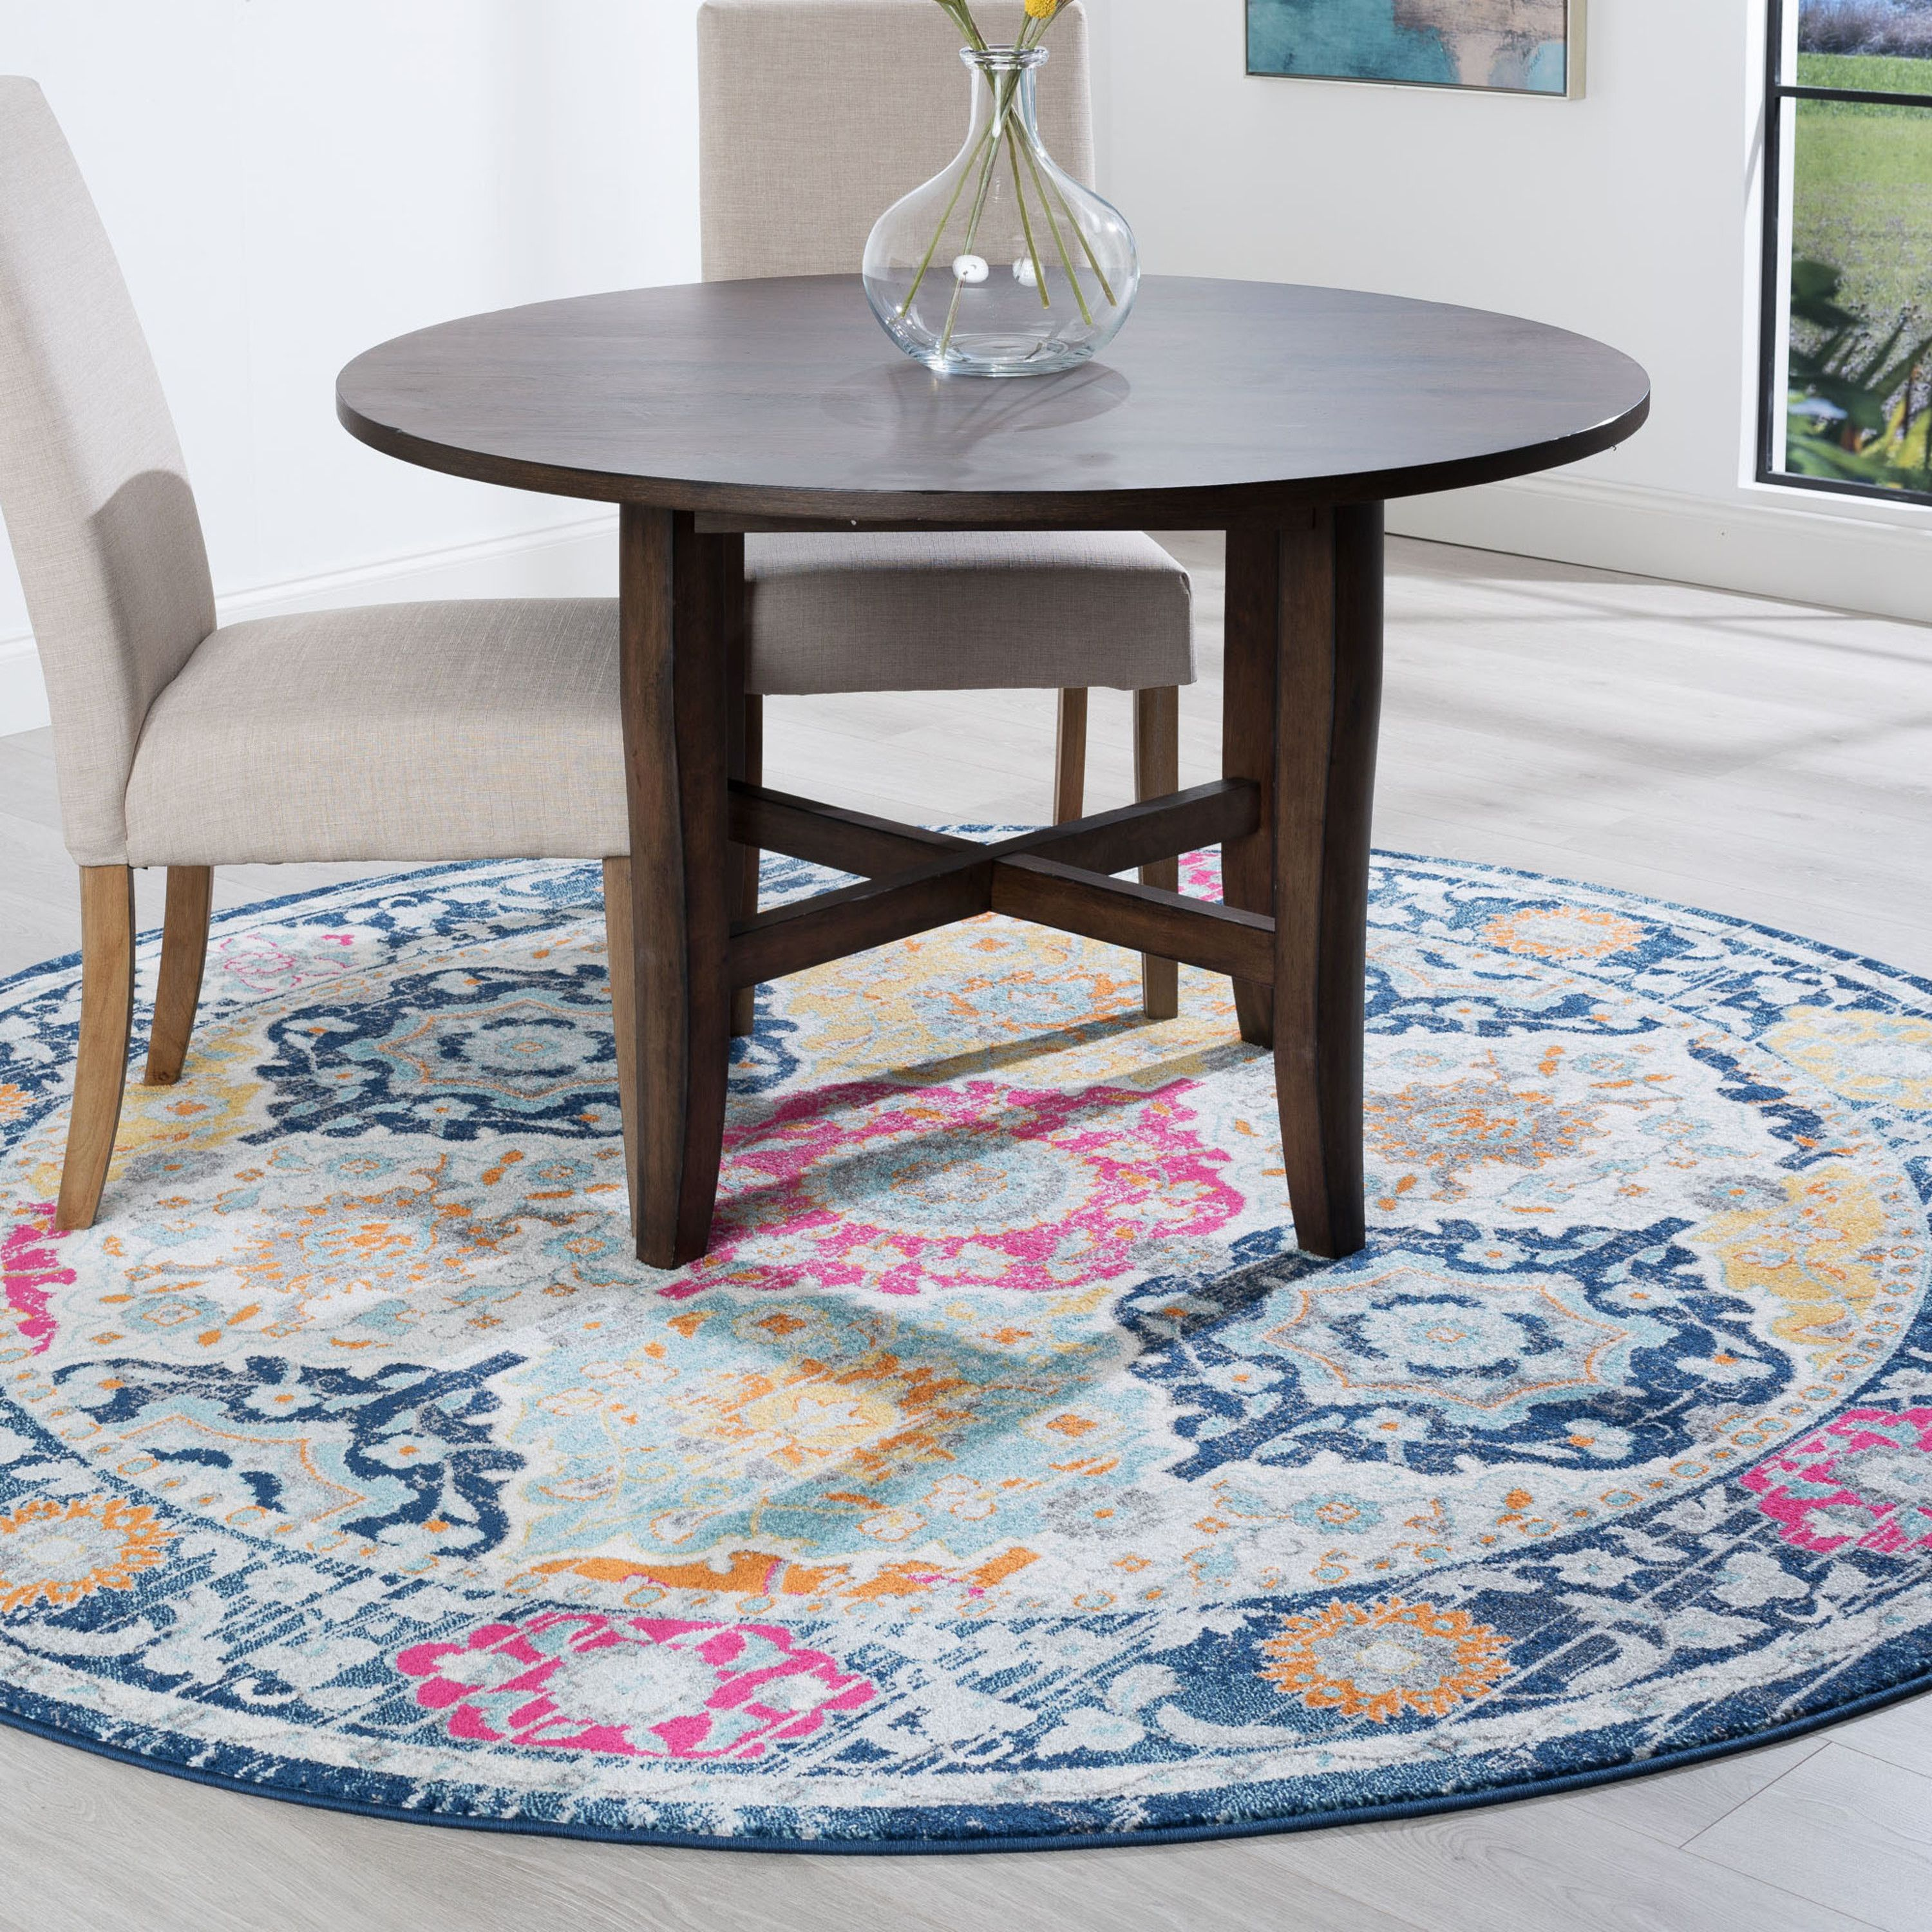 Home In 2020 Round Area Rugs Area Rugs Transitional Area Rugs